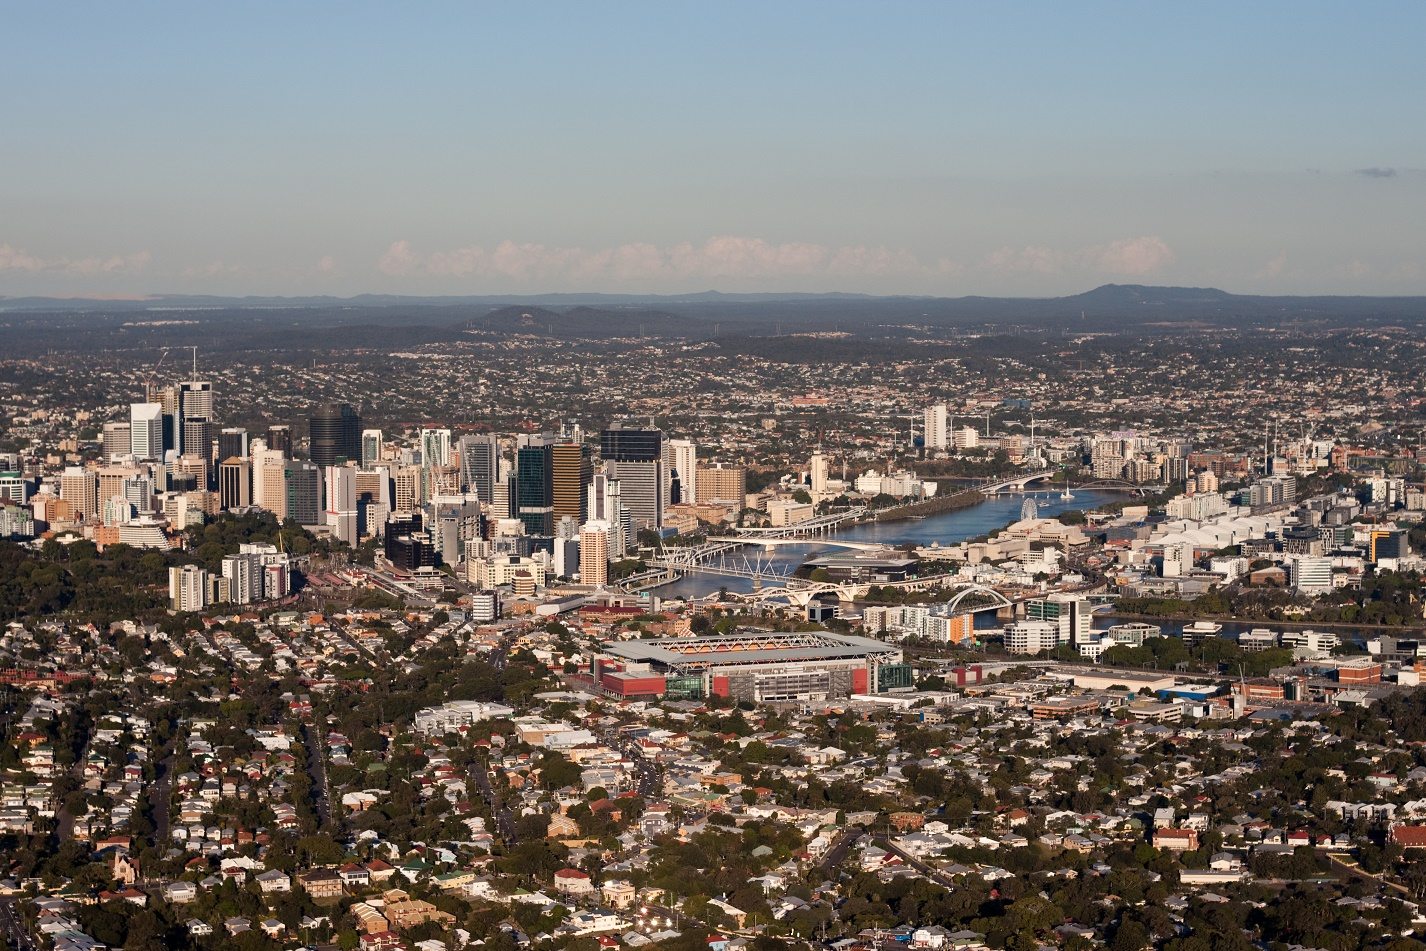 As the economic and cultural centre of Greater Brisbane, the Brisbane CBD and its surrounds will have the highest levels of demand and greatest future scarcity for the right properties.